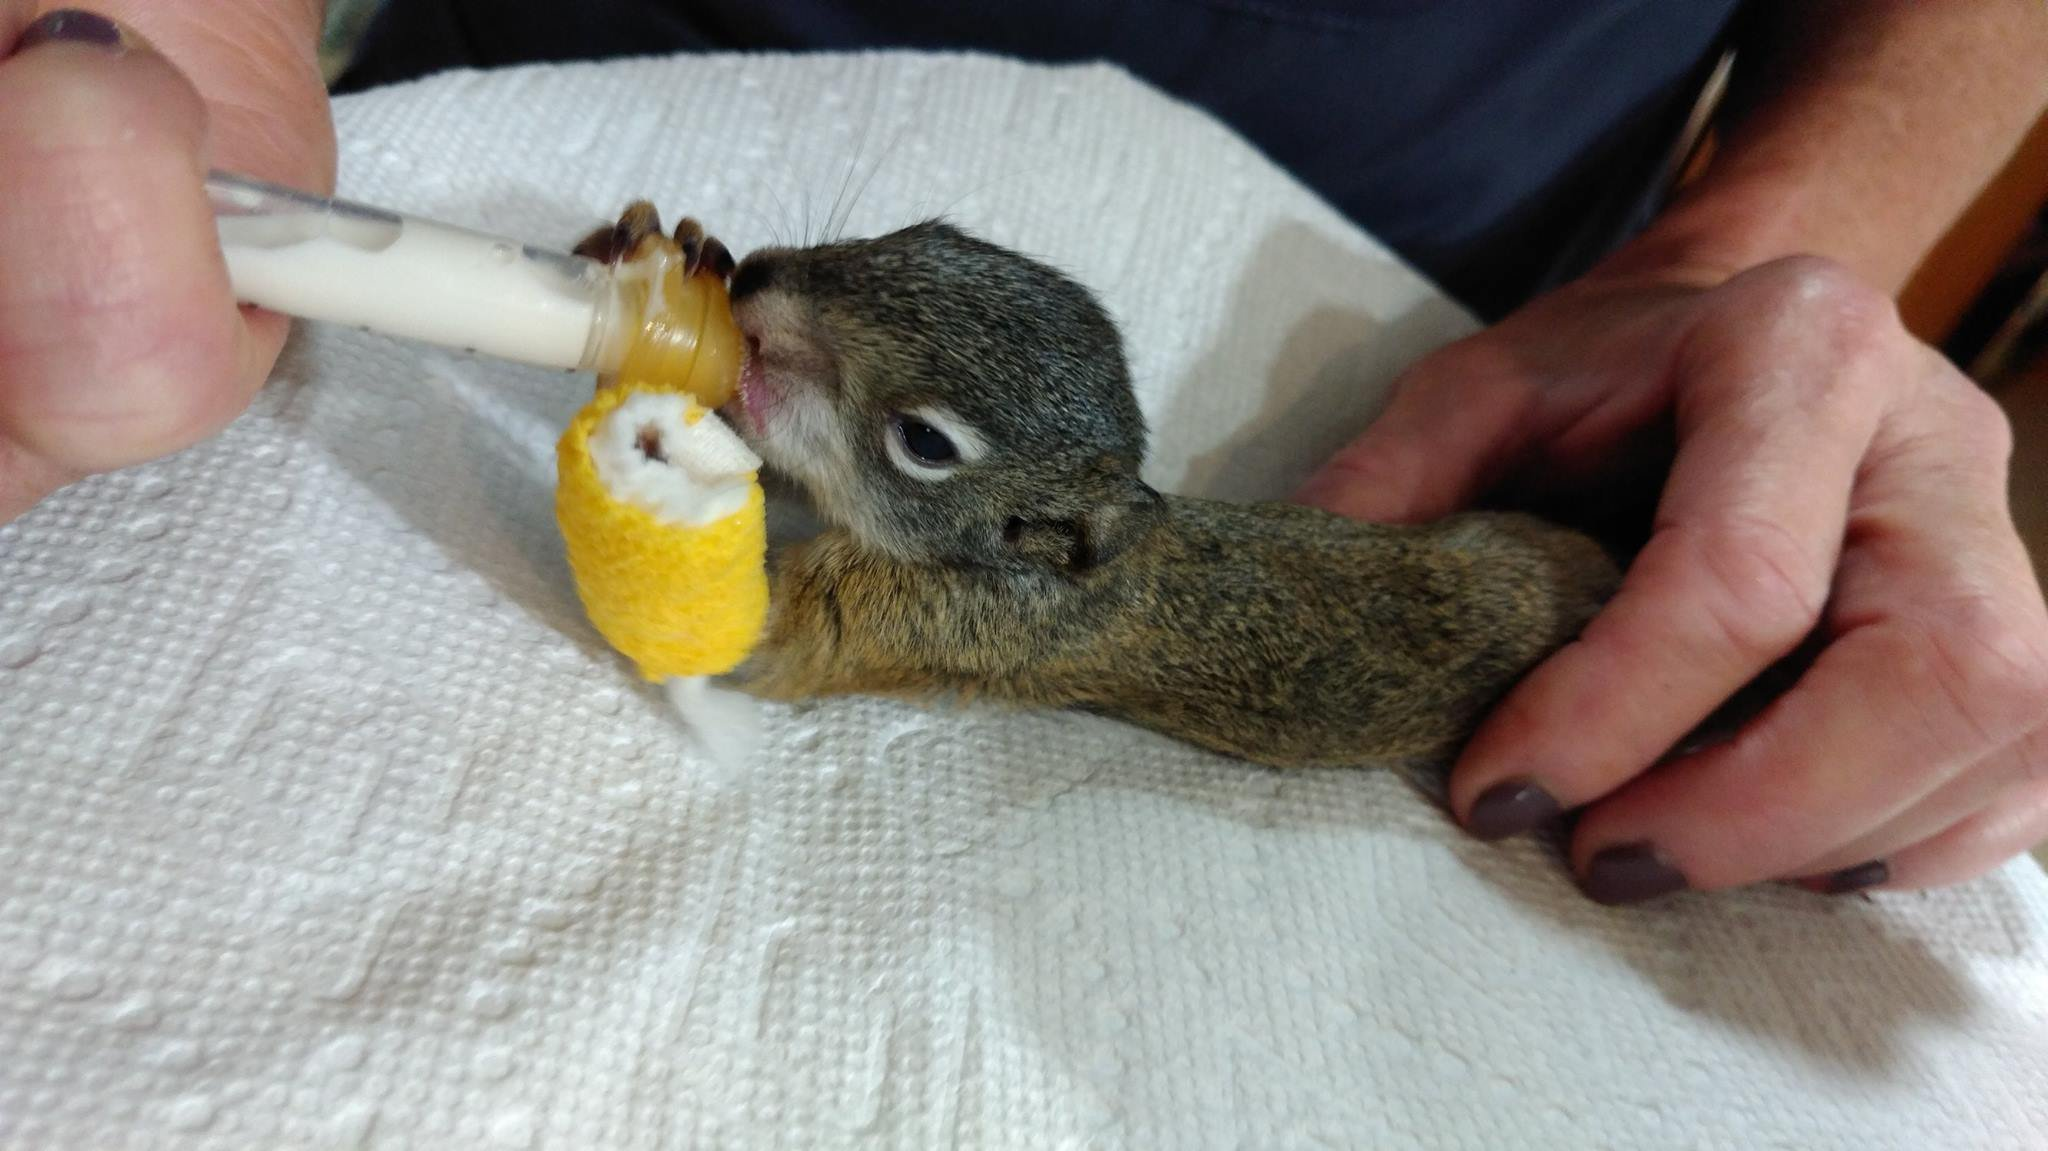 Vets Are Rehabilitating A Baby Squirrel That Was Found With Broken Leg On The Side